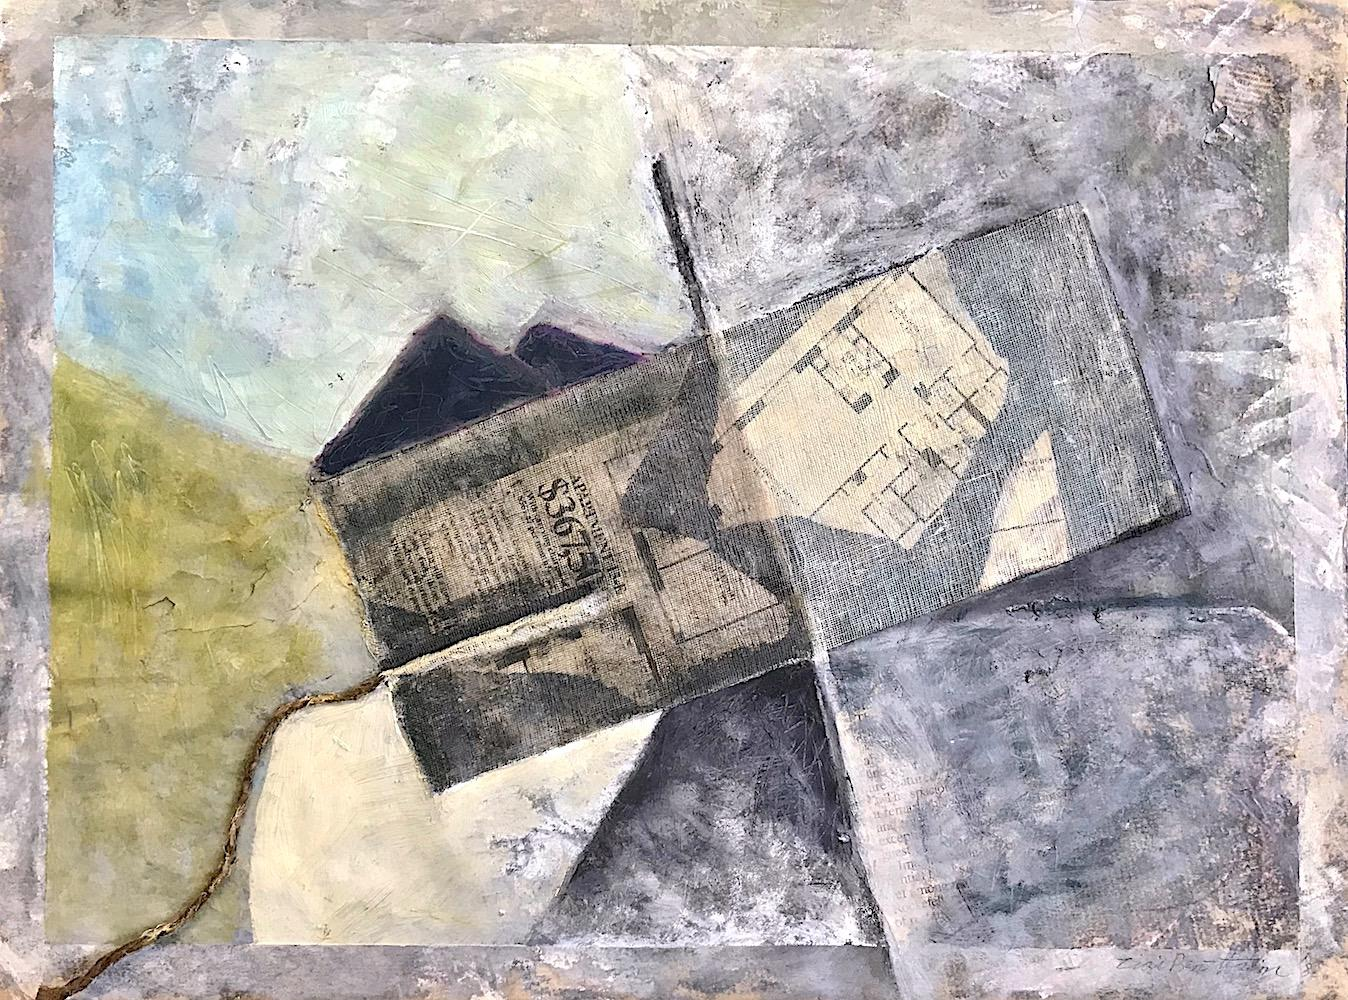 APARTMENT FOR SALE:15-E, Abstract Mixed Media 3-D Collage, Real Estate Listing